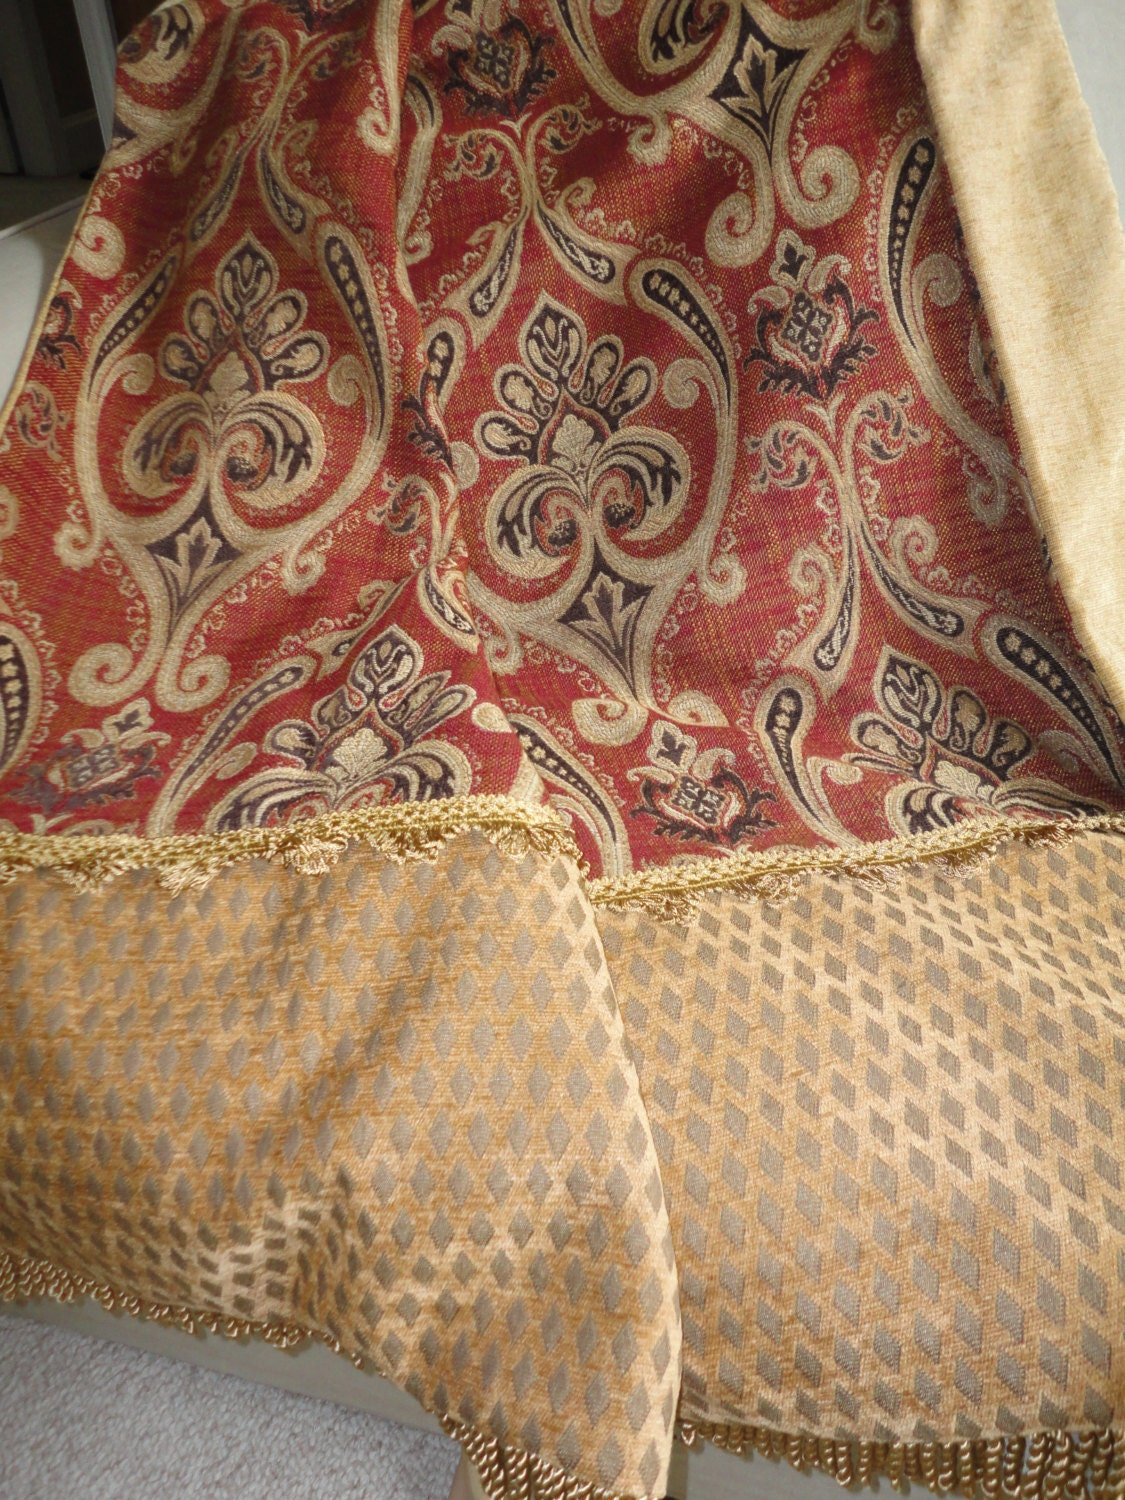 Throw Blanket In Rust Gold And Brown Tones One Of A Kind